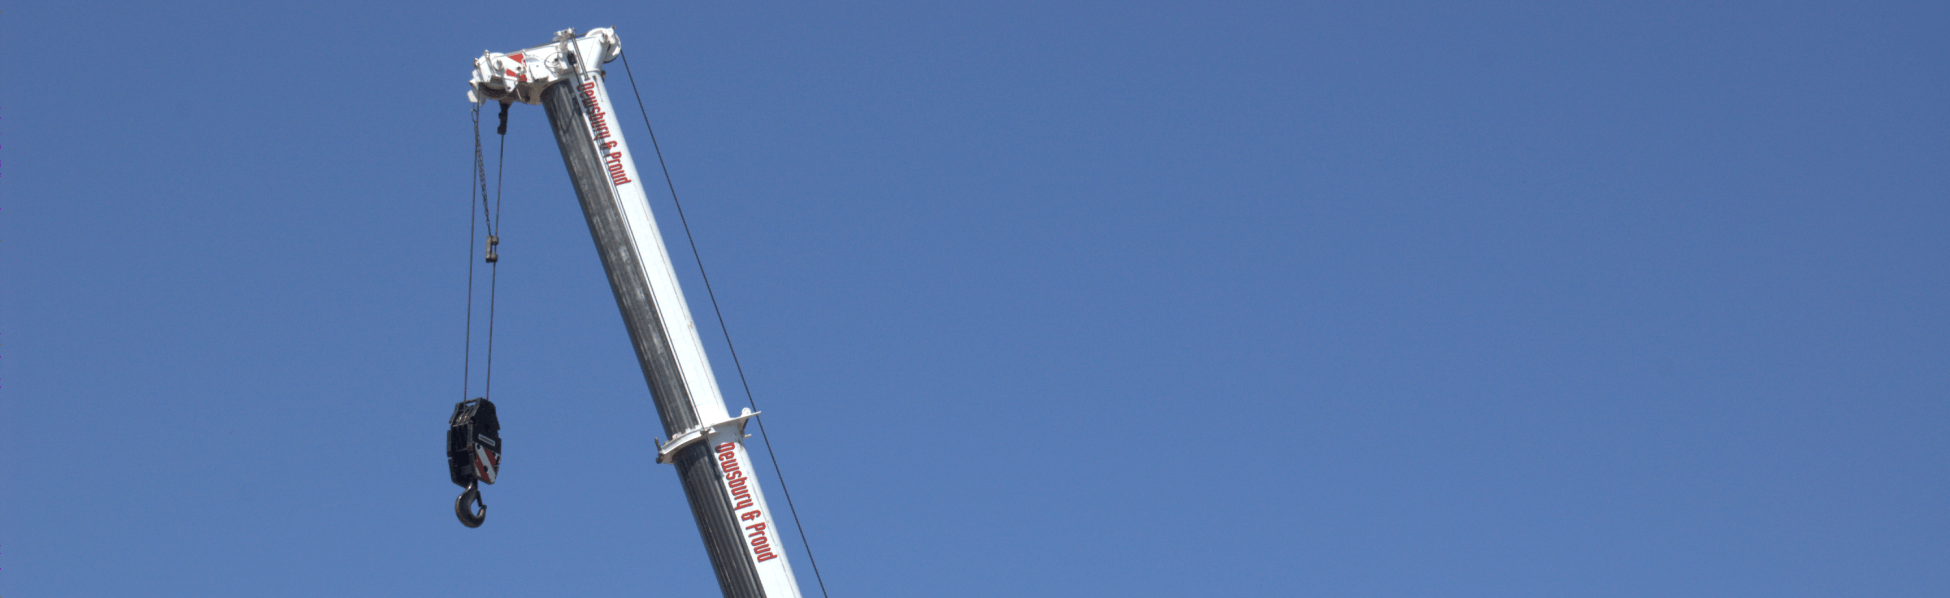 <span style='color:#d60800'>//</span> Contract Lifting and<br><strong>Crane Hire Specialists</strong>